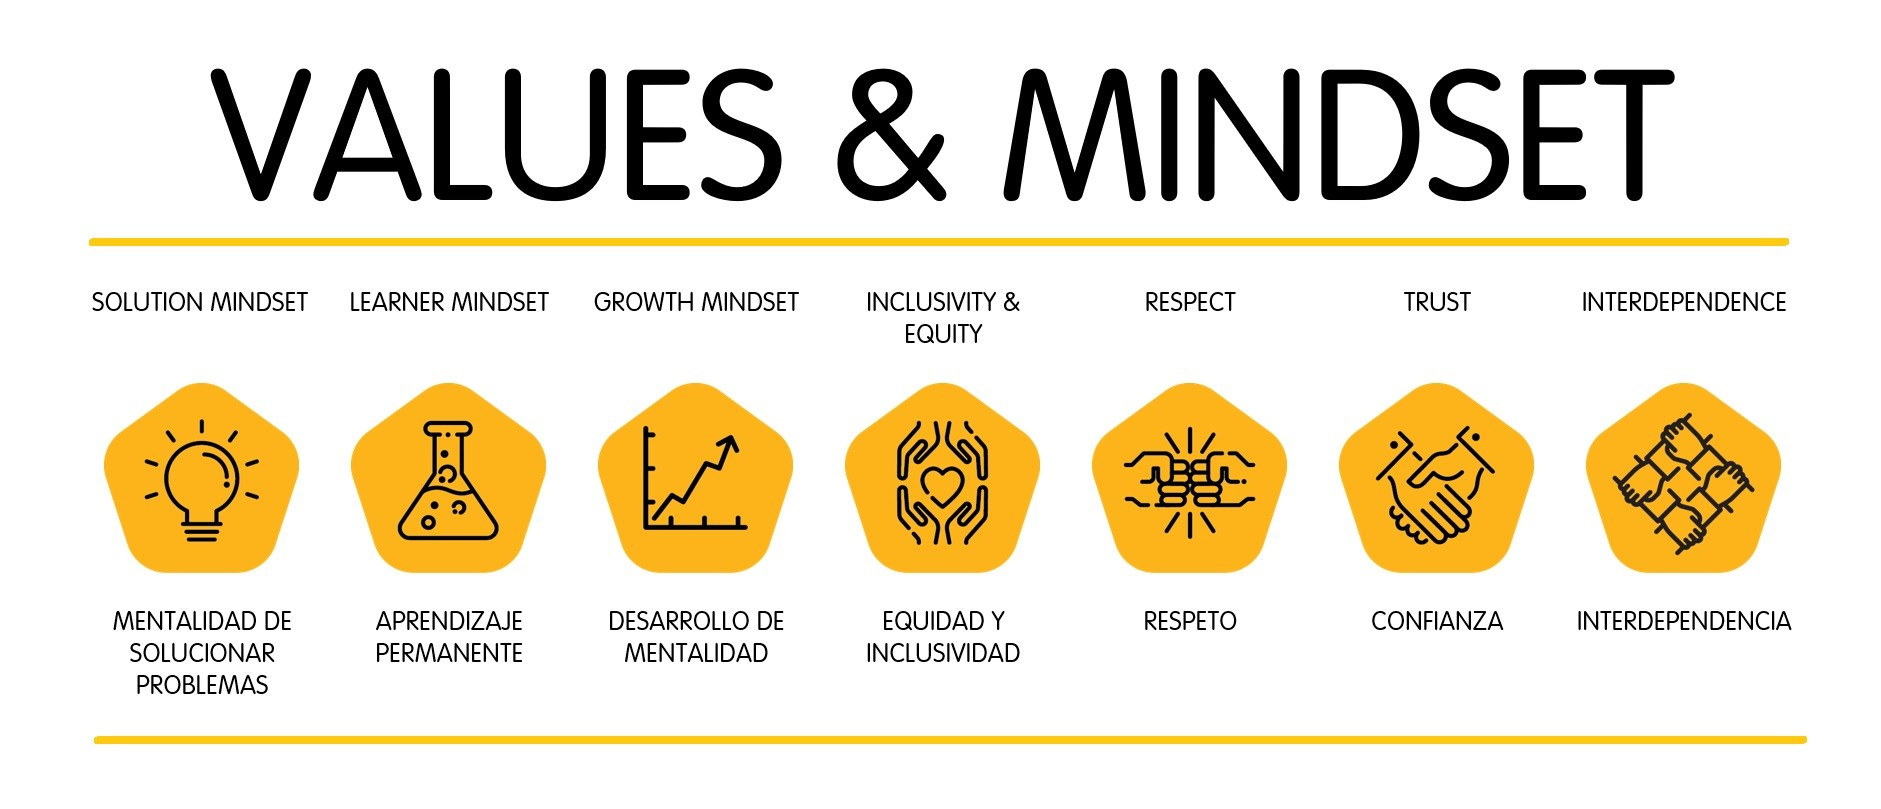 Values and Mindset